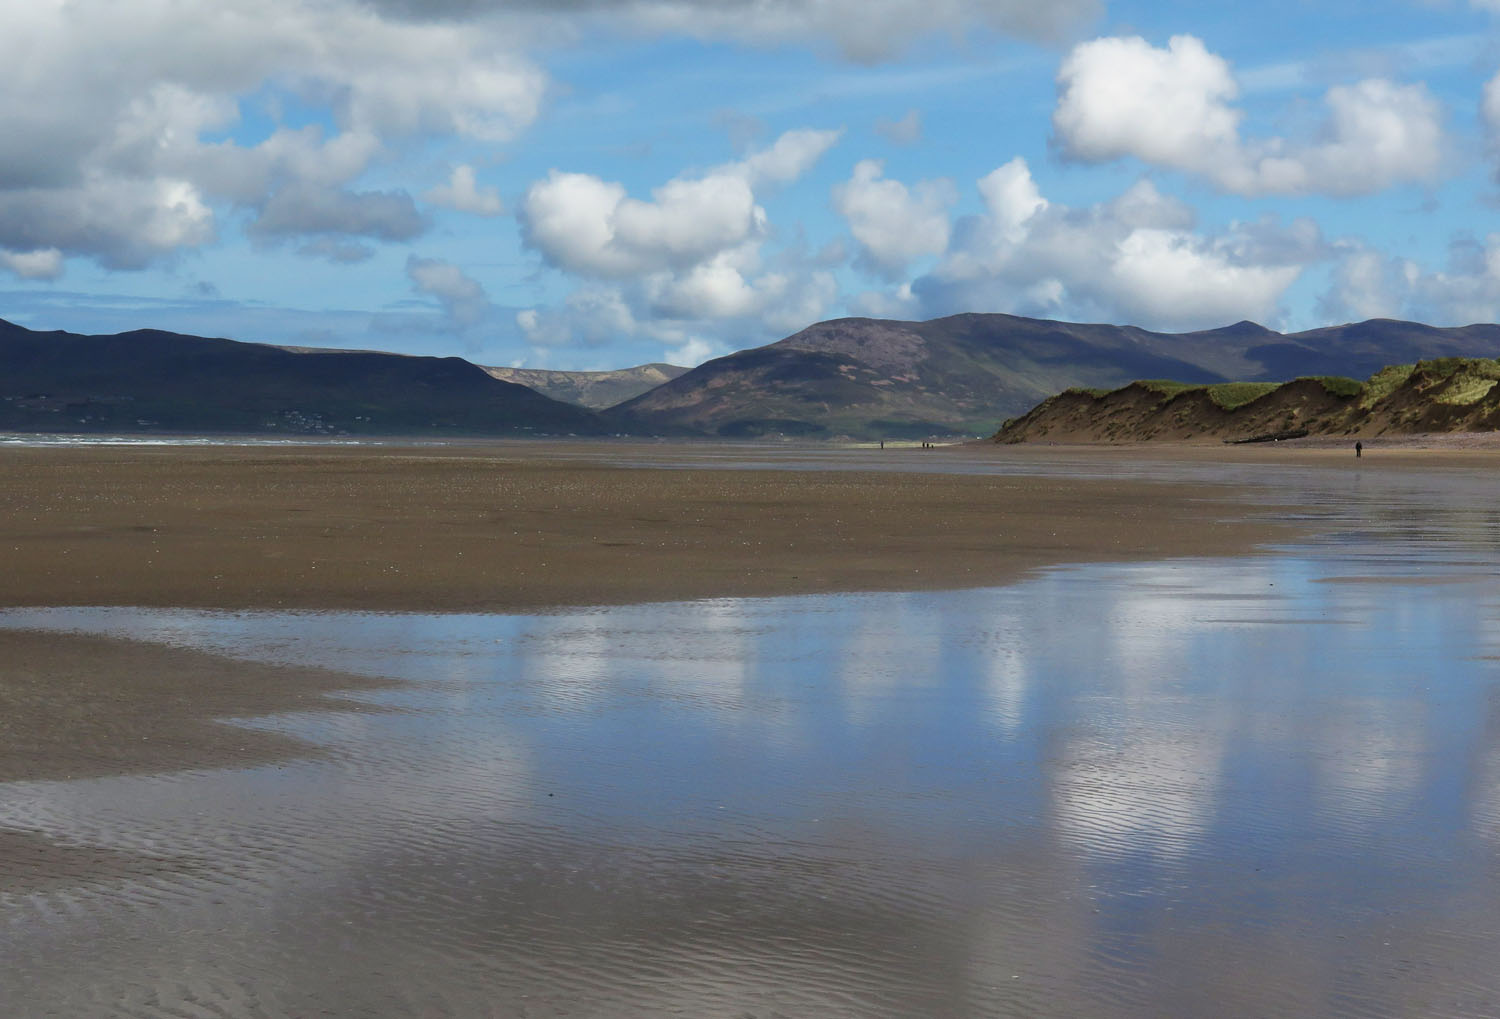 Ireland-Sights-And-Scenery-Rossbeigh-Strand-Reflection